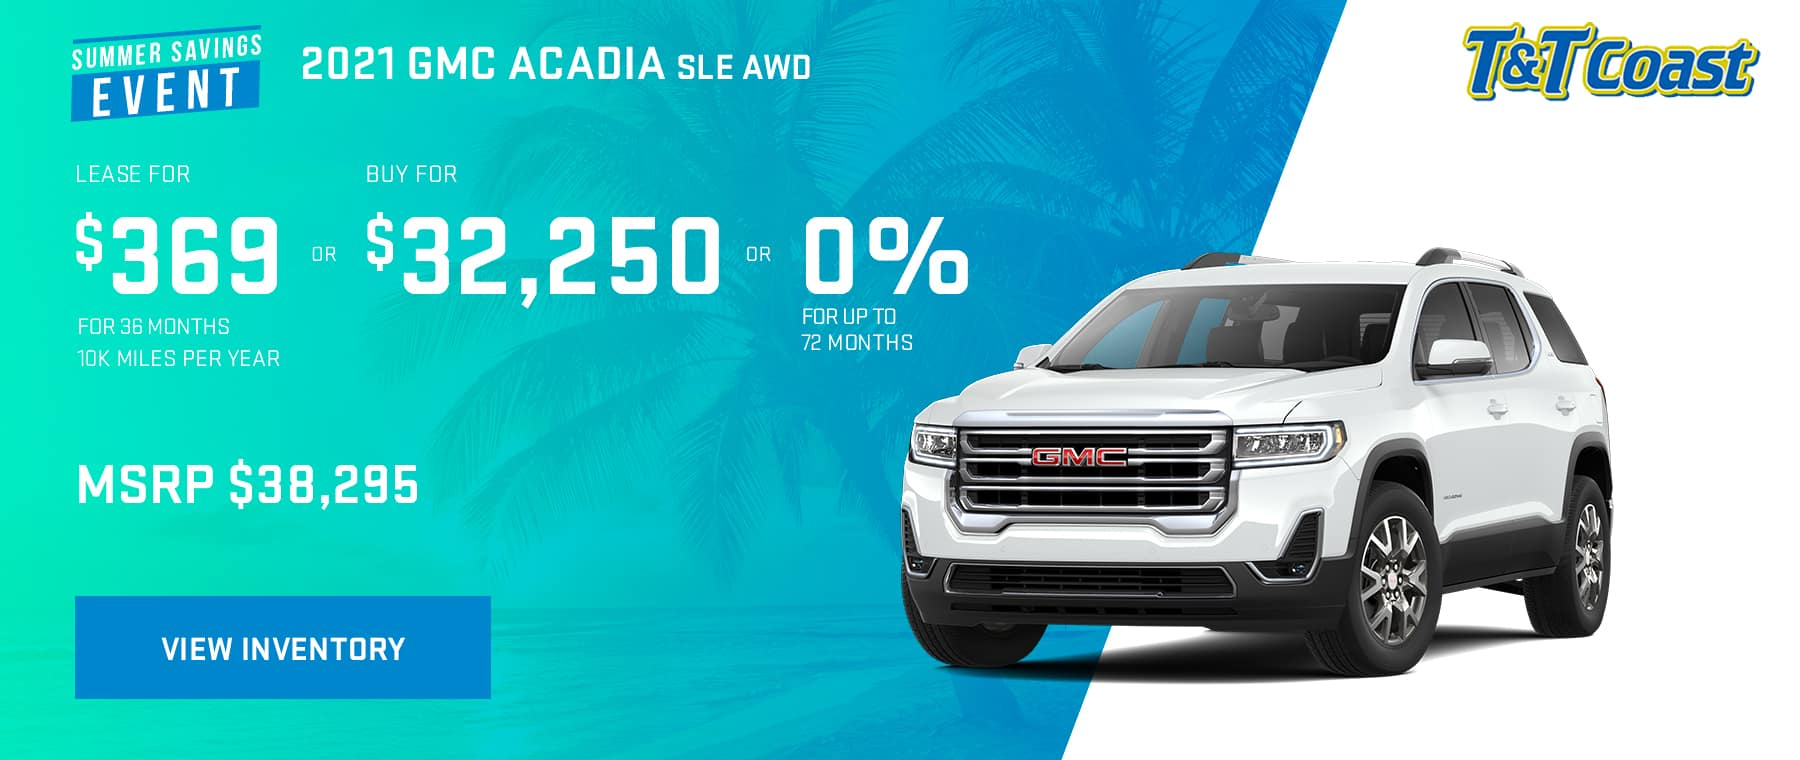 2021 GMC ACADIA SLE AWD Subtitle: MSRP $38,295 $369/MONTH LEASE!* For 36 Months /10K Miles/Year OR BUY FOR:$32,250 OR 0% for up to 72 months